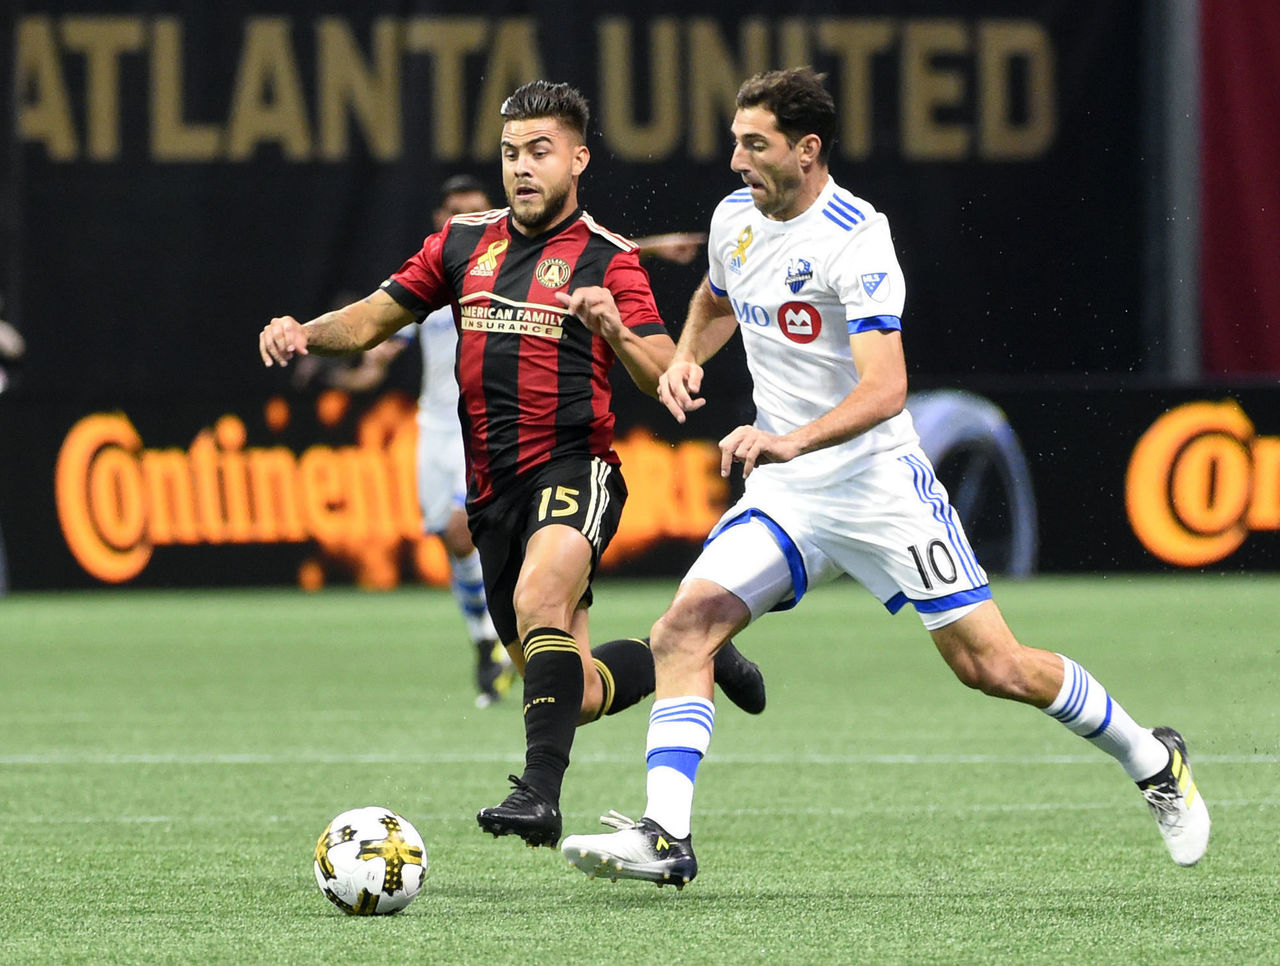 Cropped 2017 09 24t221240z 376122630 nocid rtrmadp 3 mls montreal impact at atlanta united fc